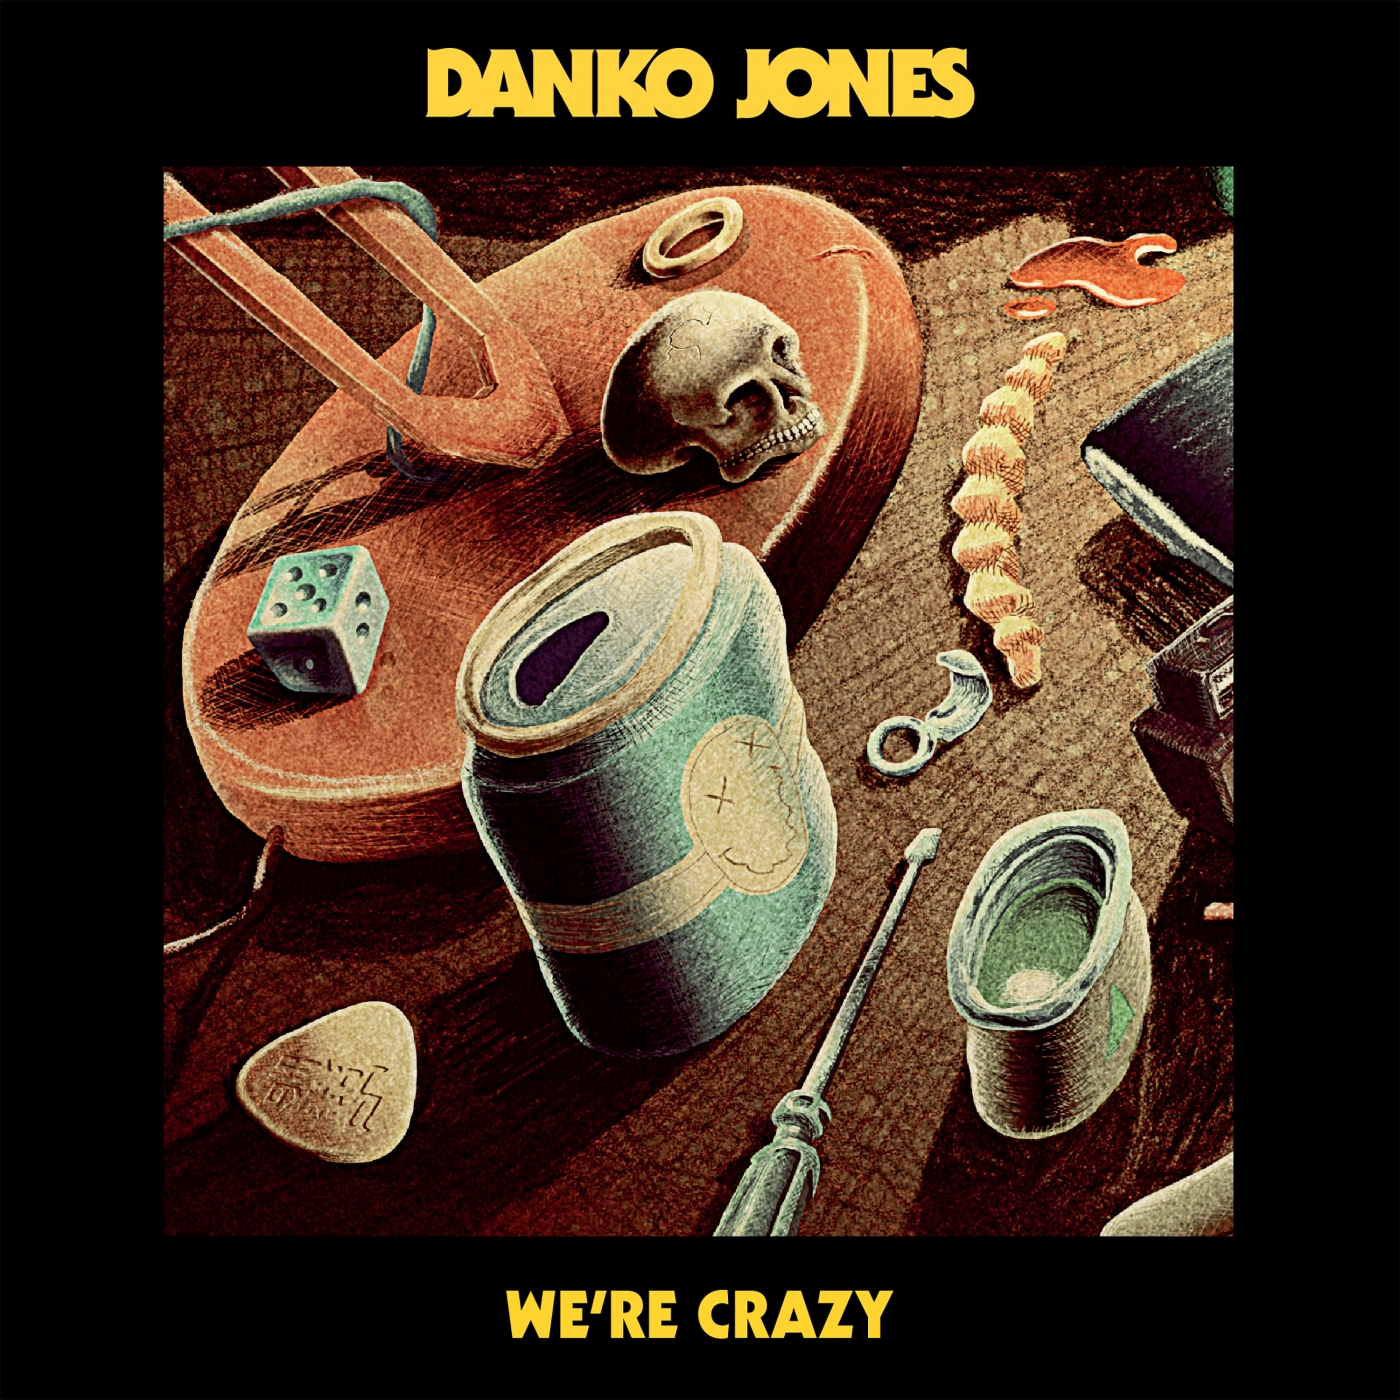 Danko Jones - We're crazy